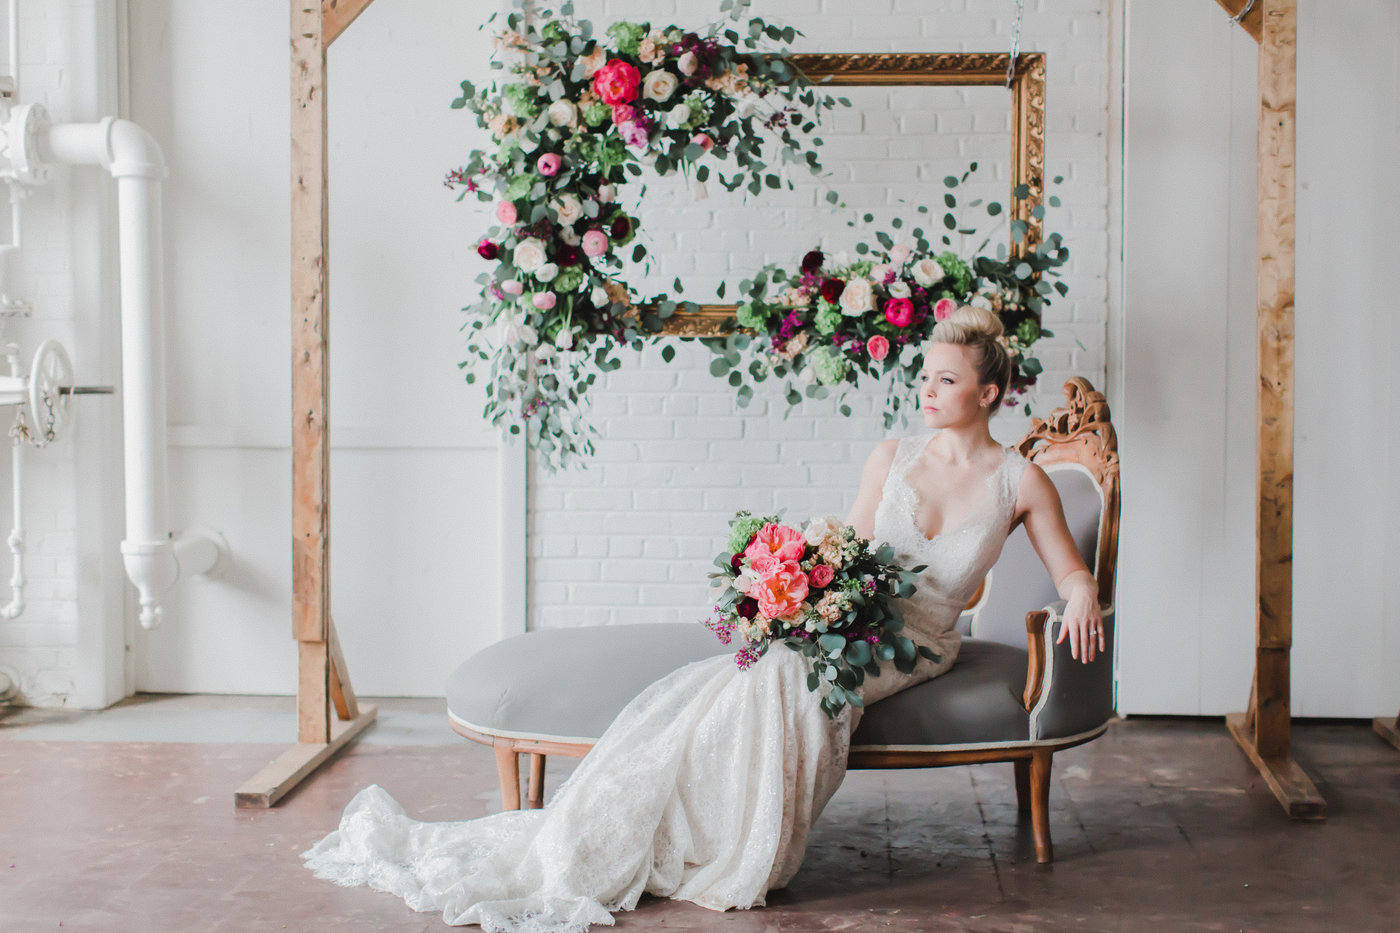 photo booth with wooden frame